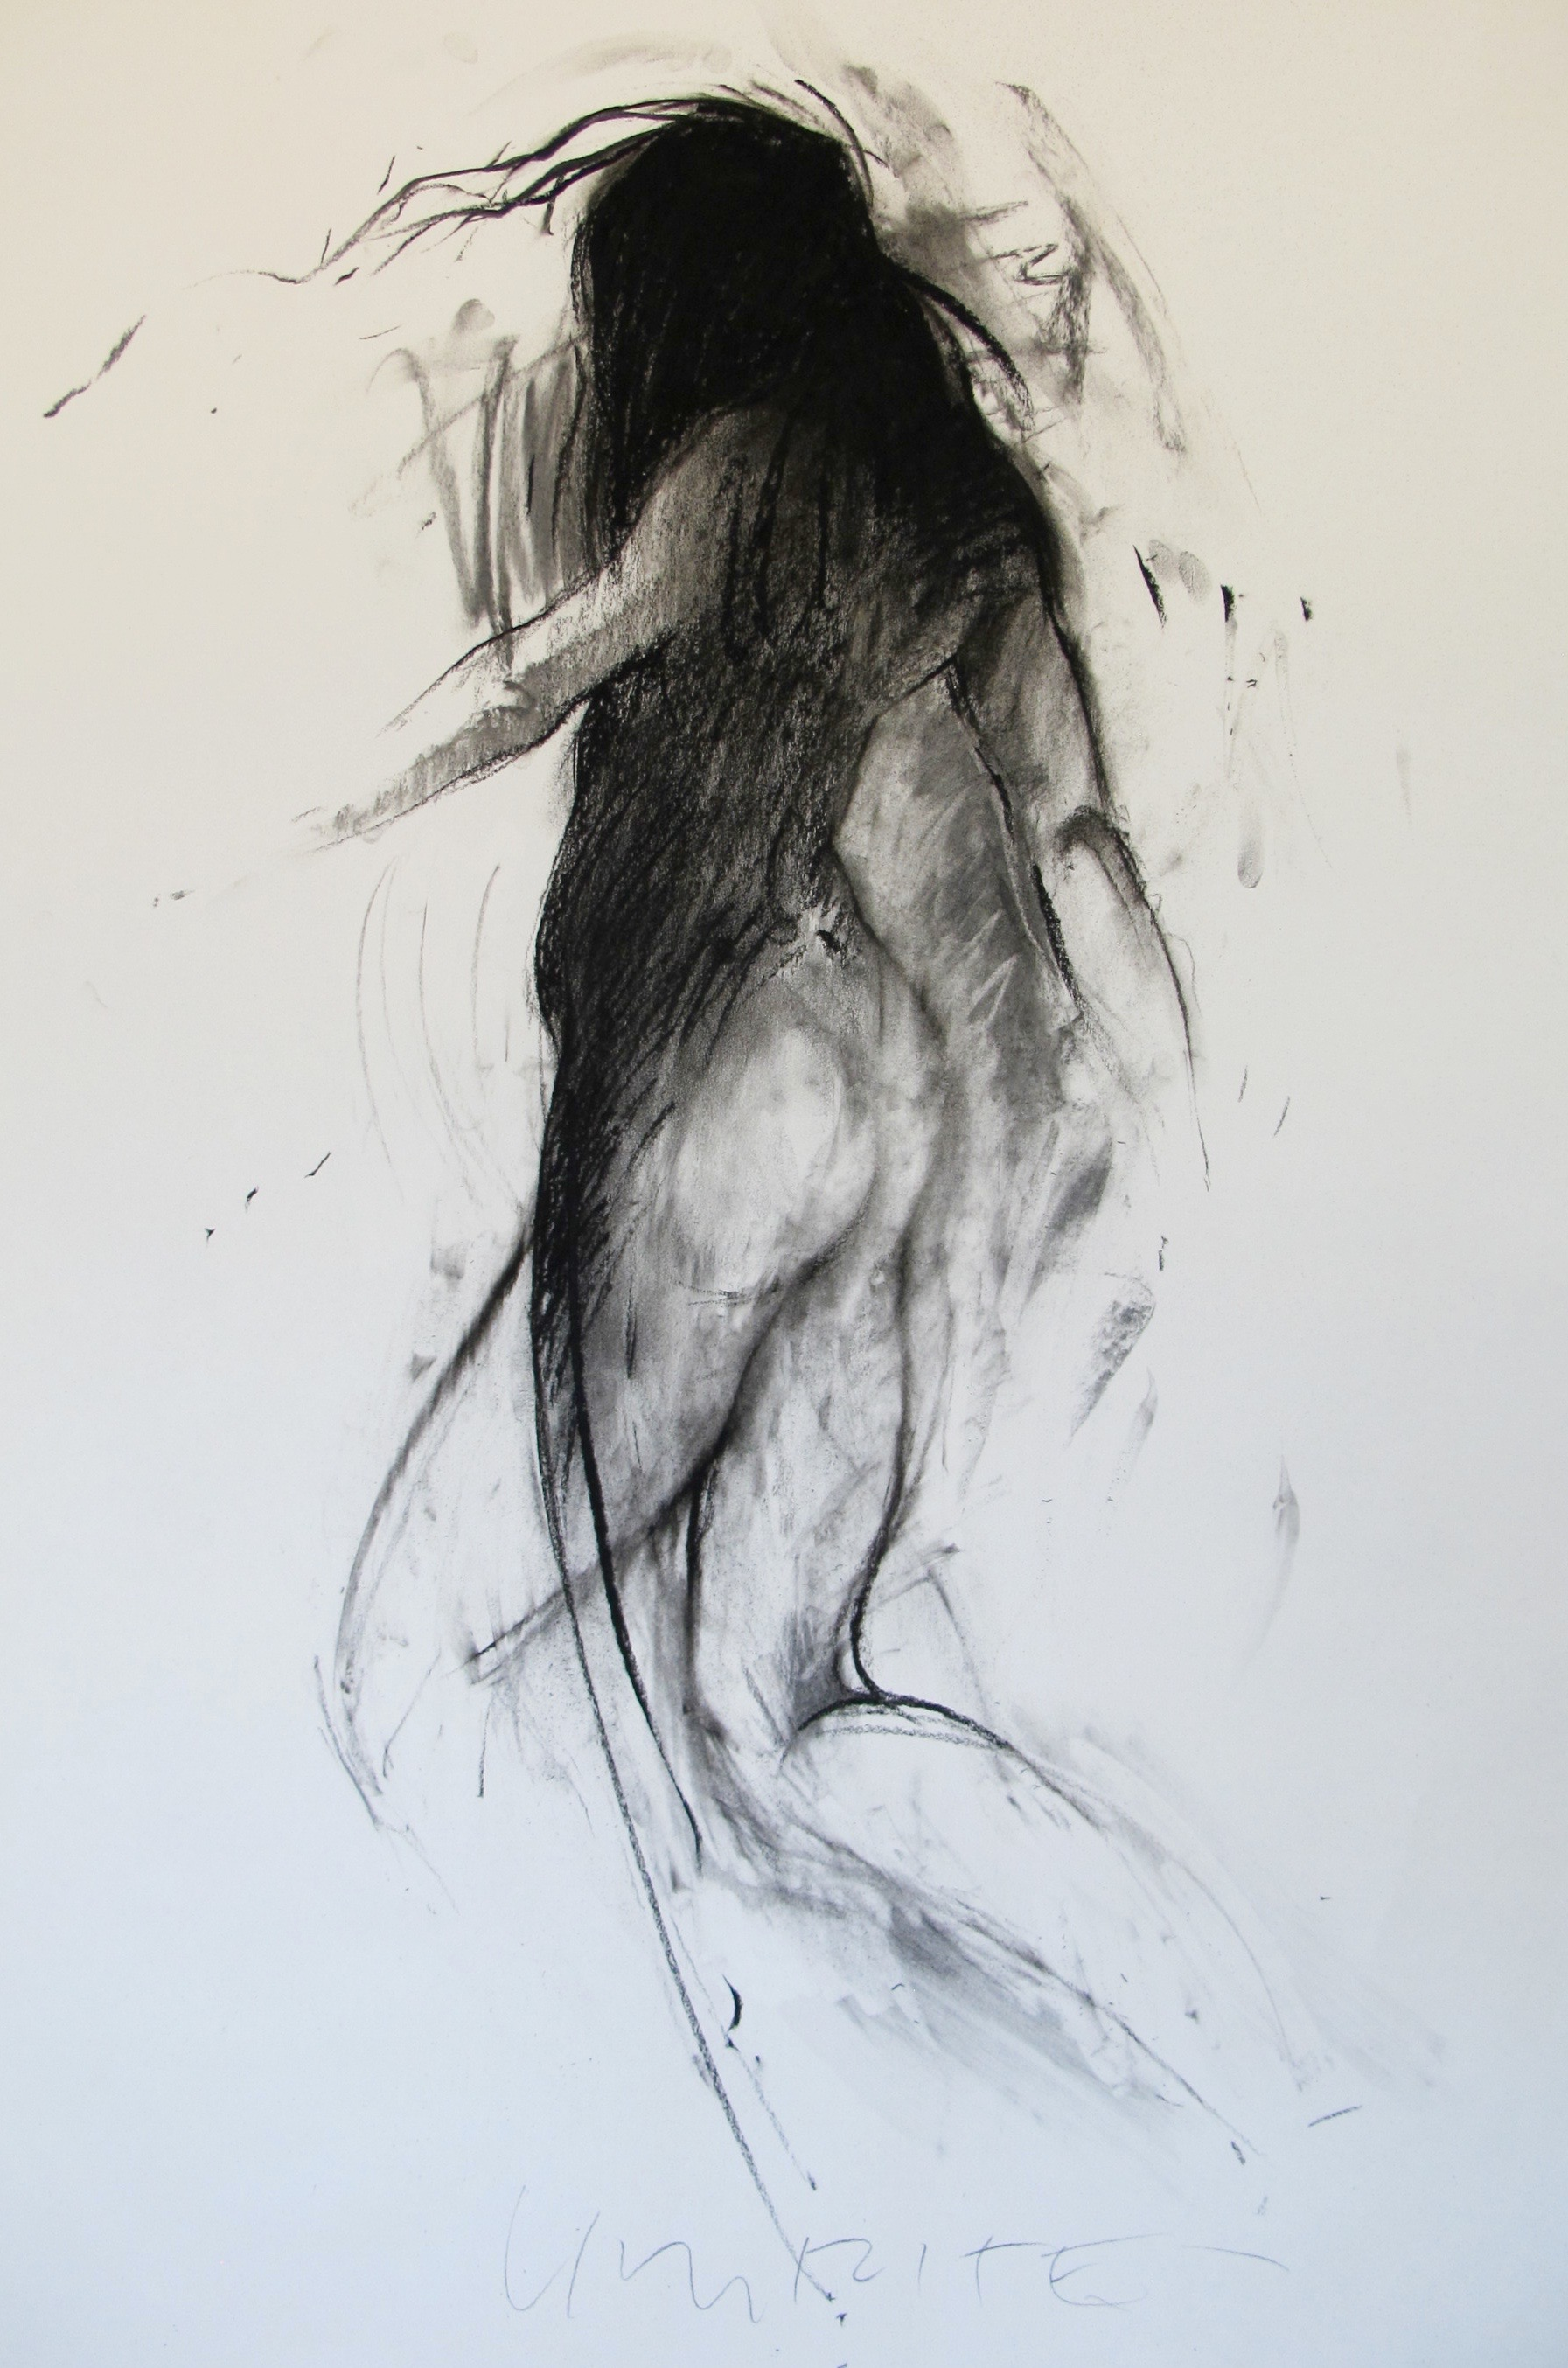 """""""Untitled"""", 36""""x 24"""", charcoal on paper, Copyright 2016 David Limrite"""